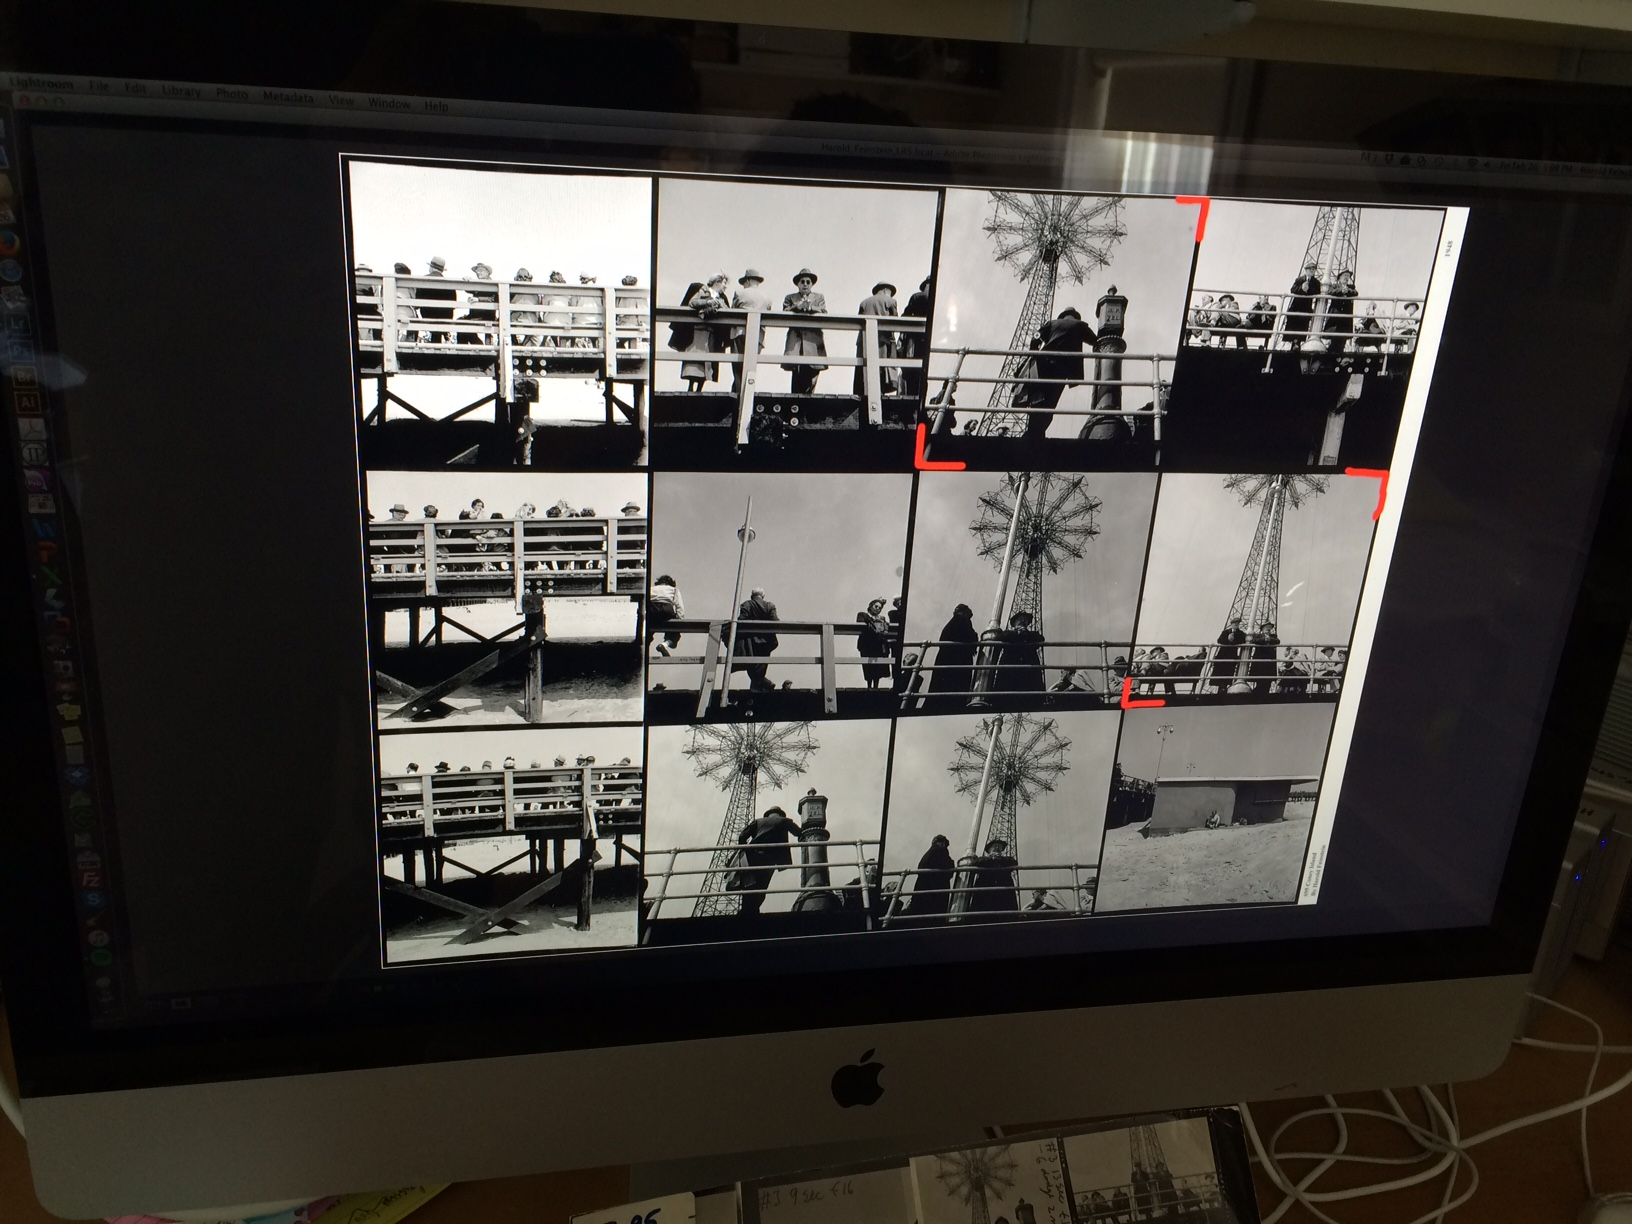 "Images from the 8x10 contact sheet digitized and viewed on the 27"" screen."